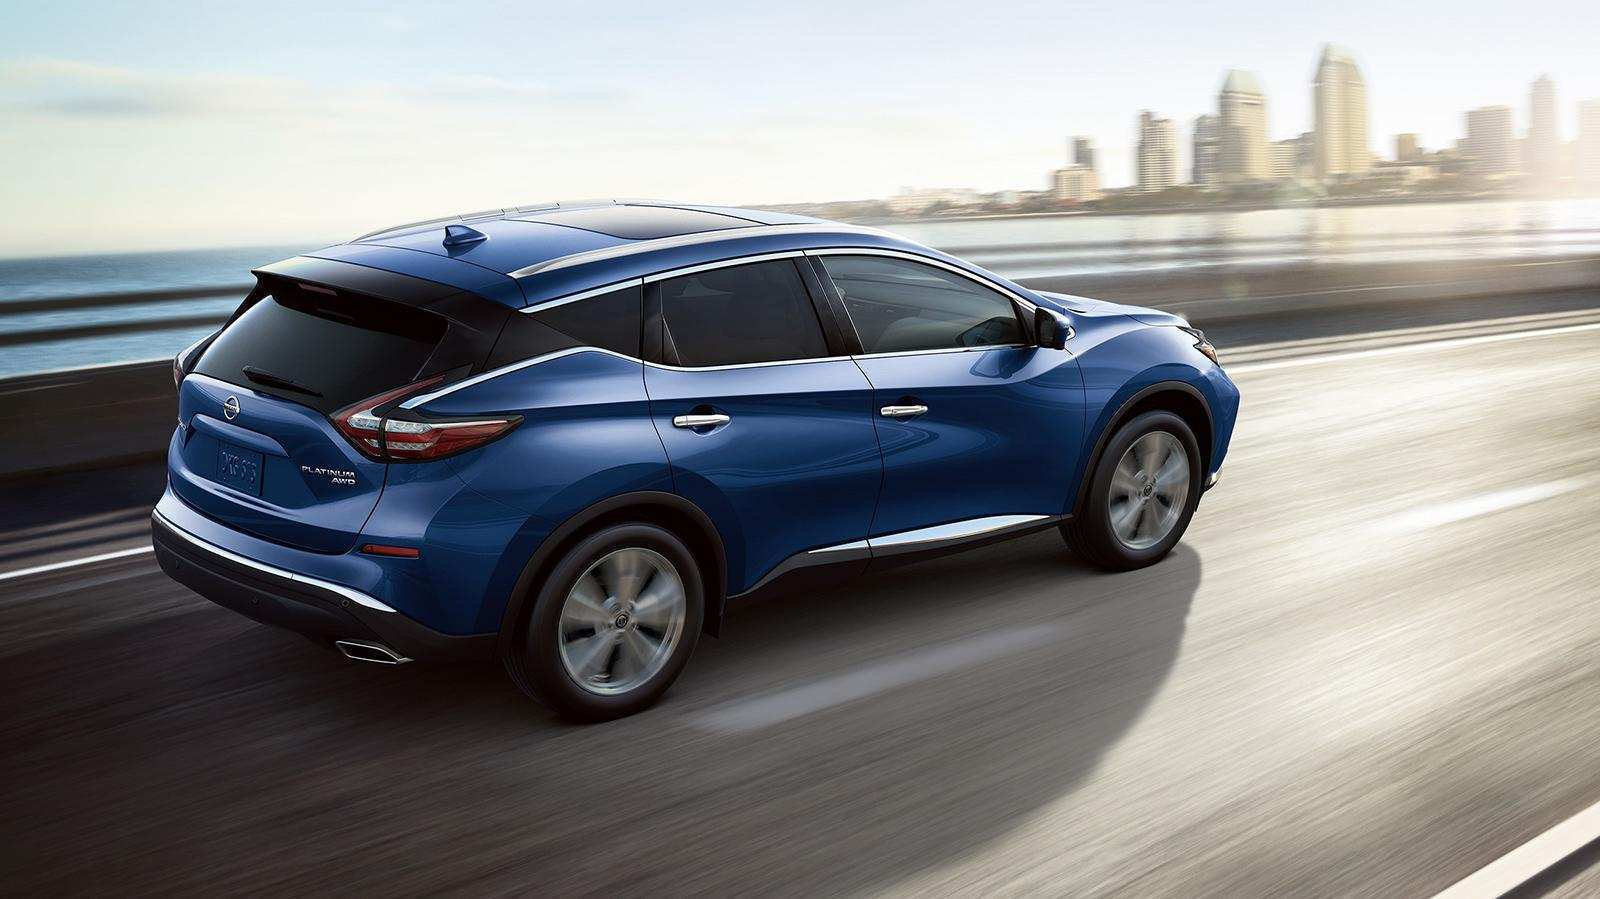 79 New New Murano Nissan 2019 Picture New Review by New Murano Nissan 2019 Picture